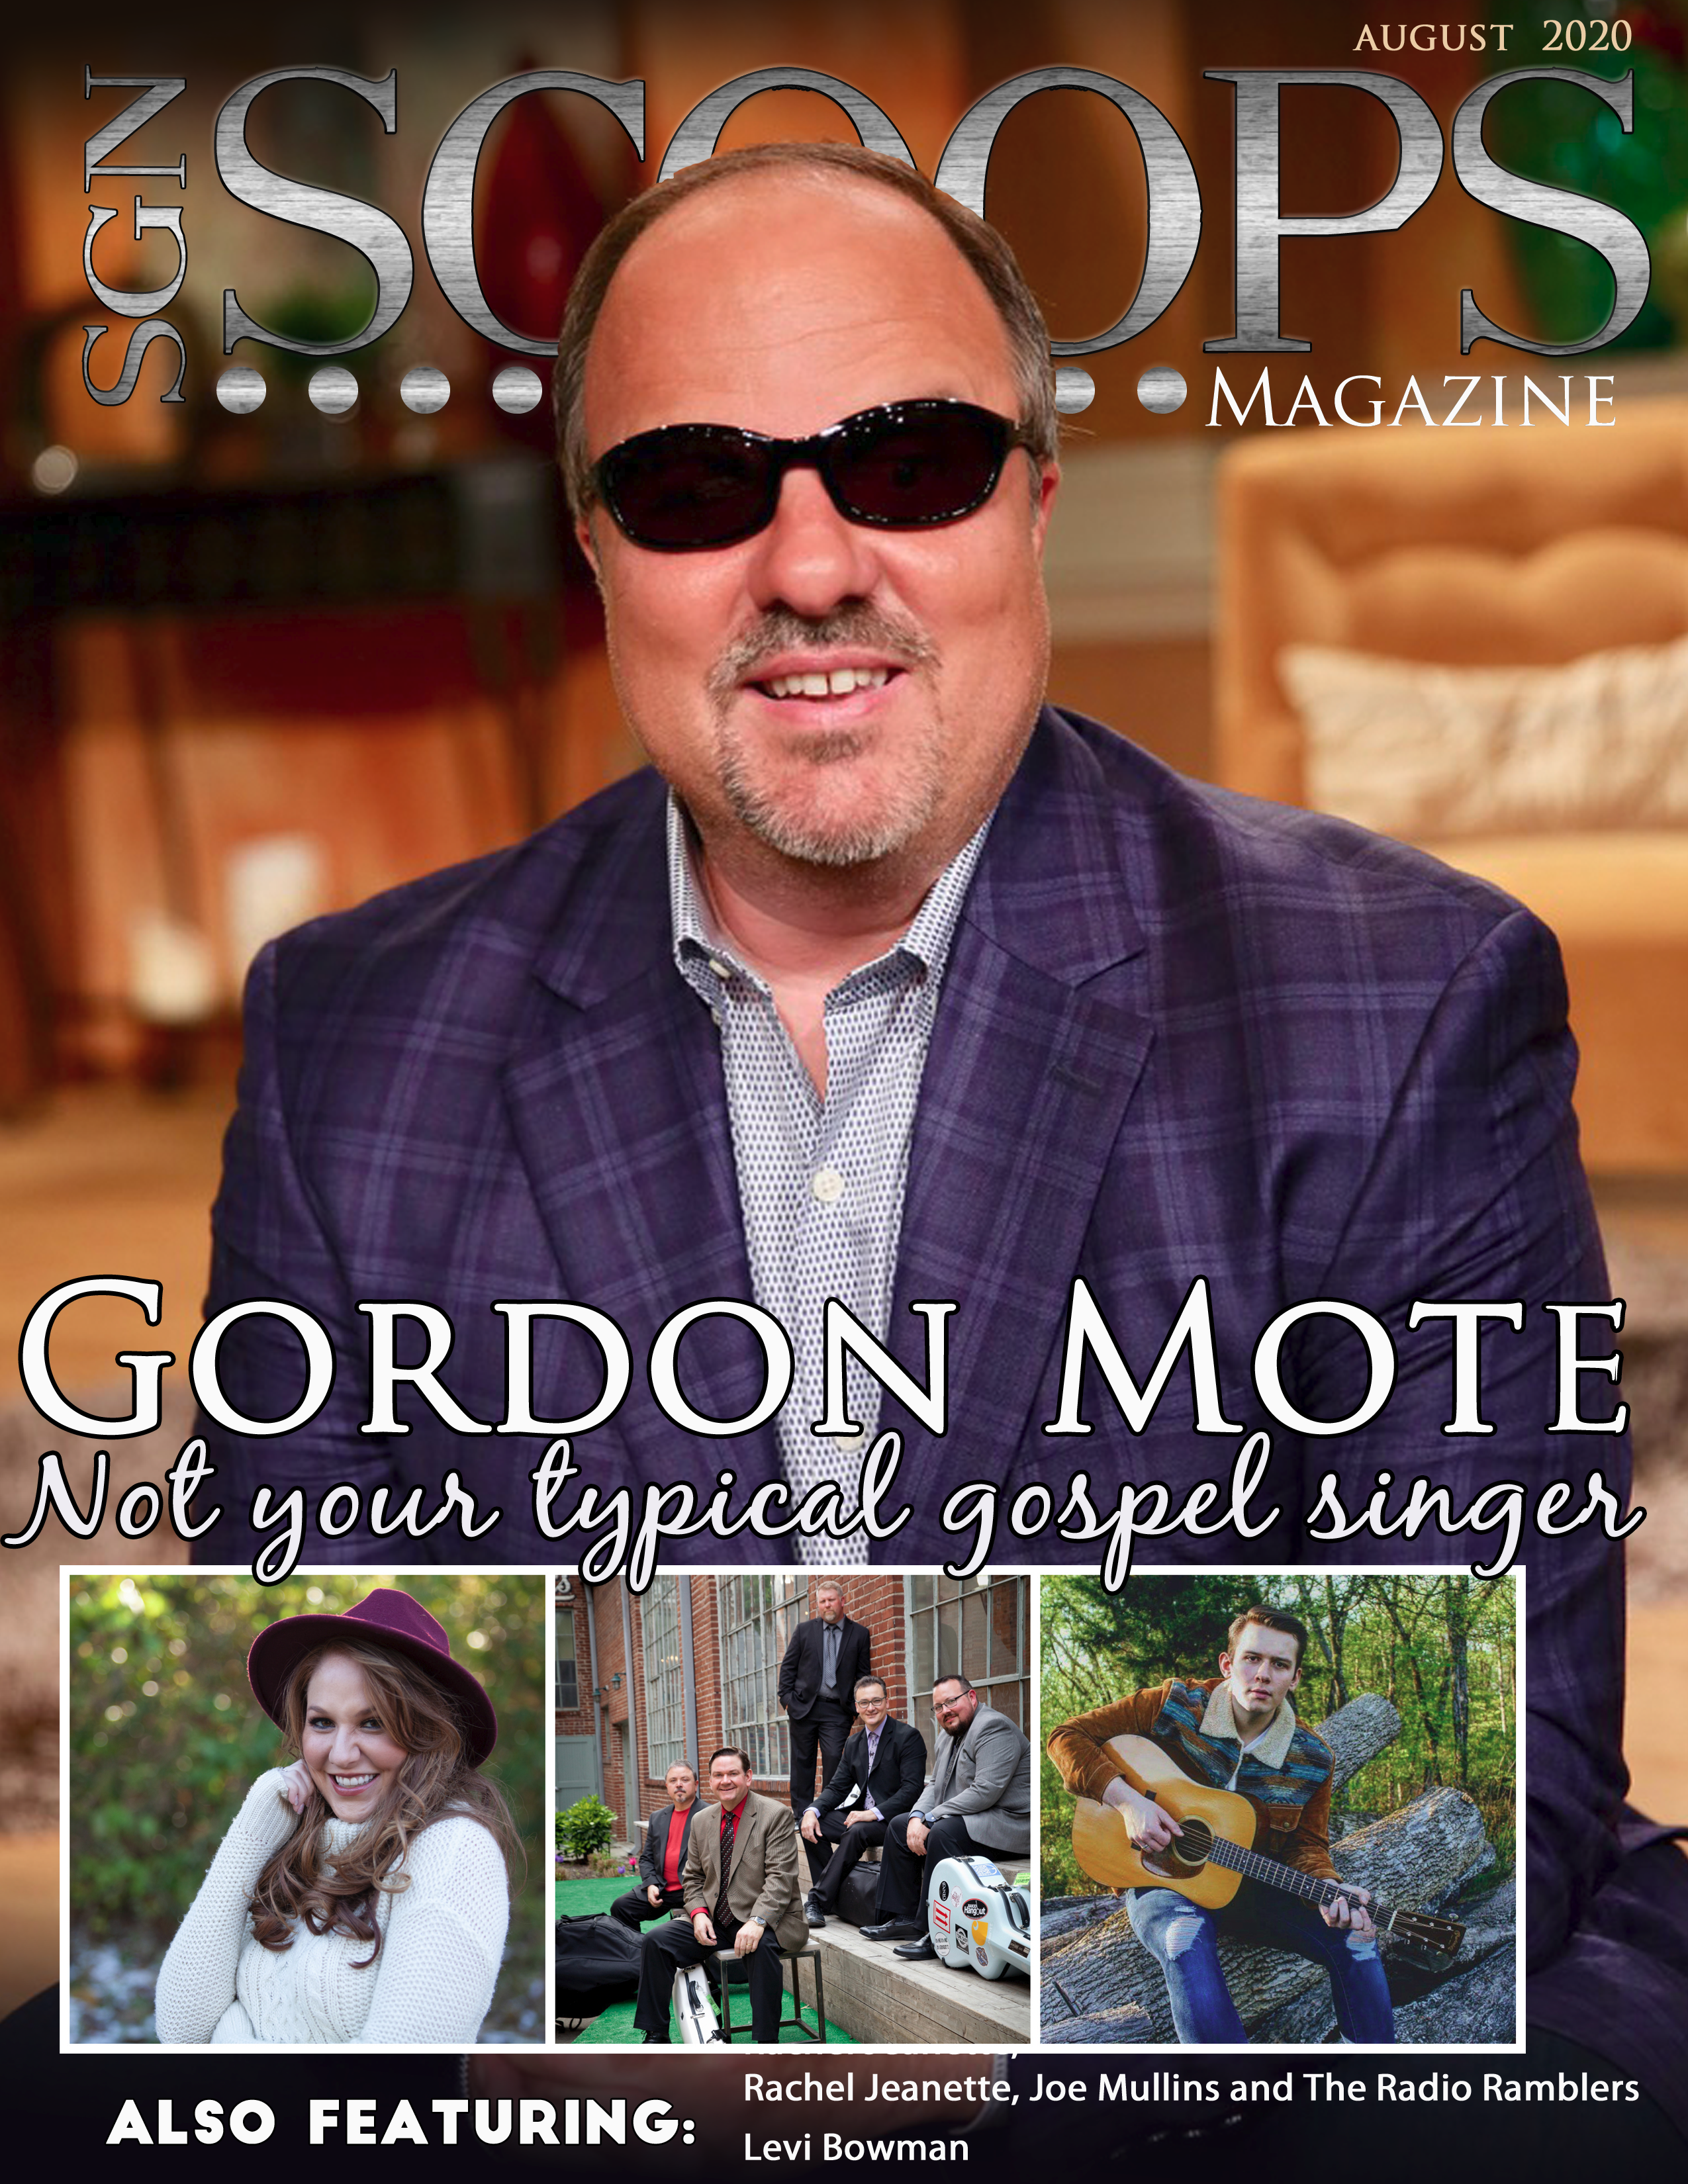 SGN Scoops Magazine